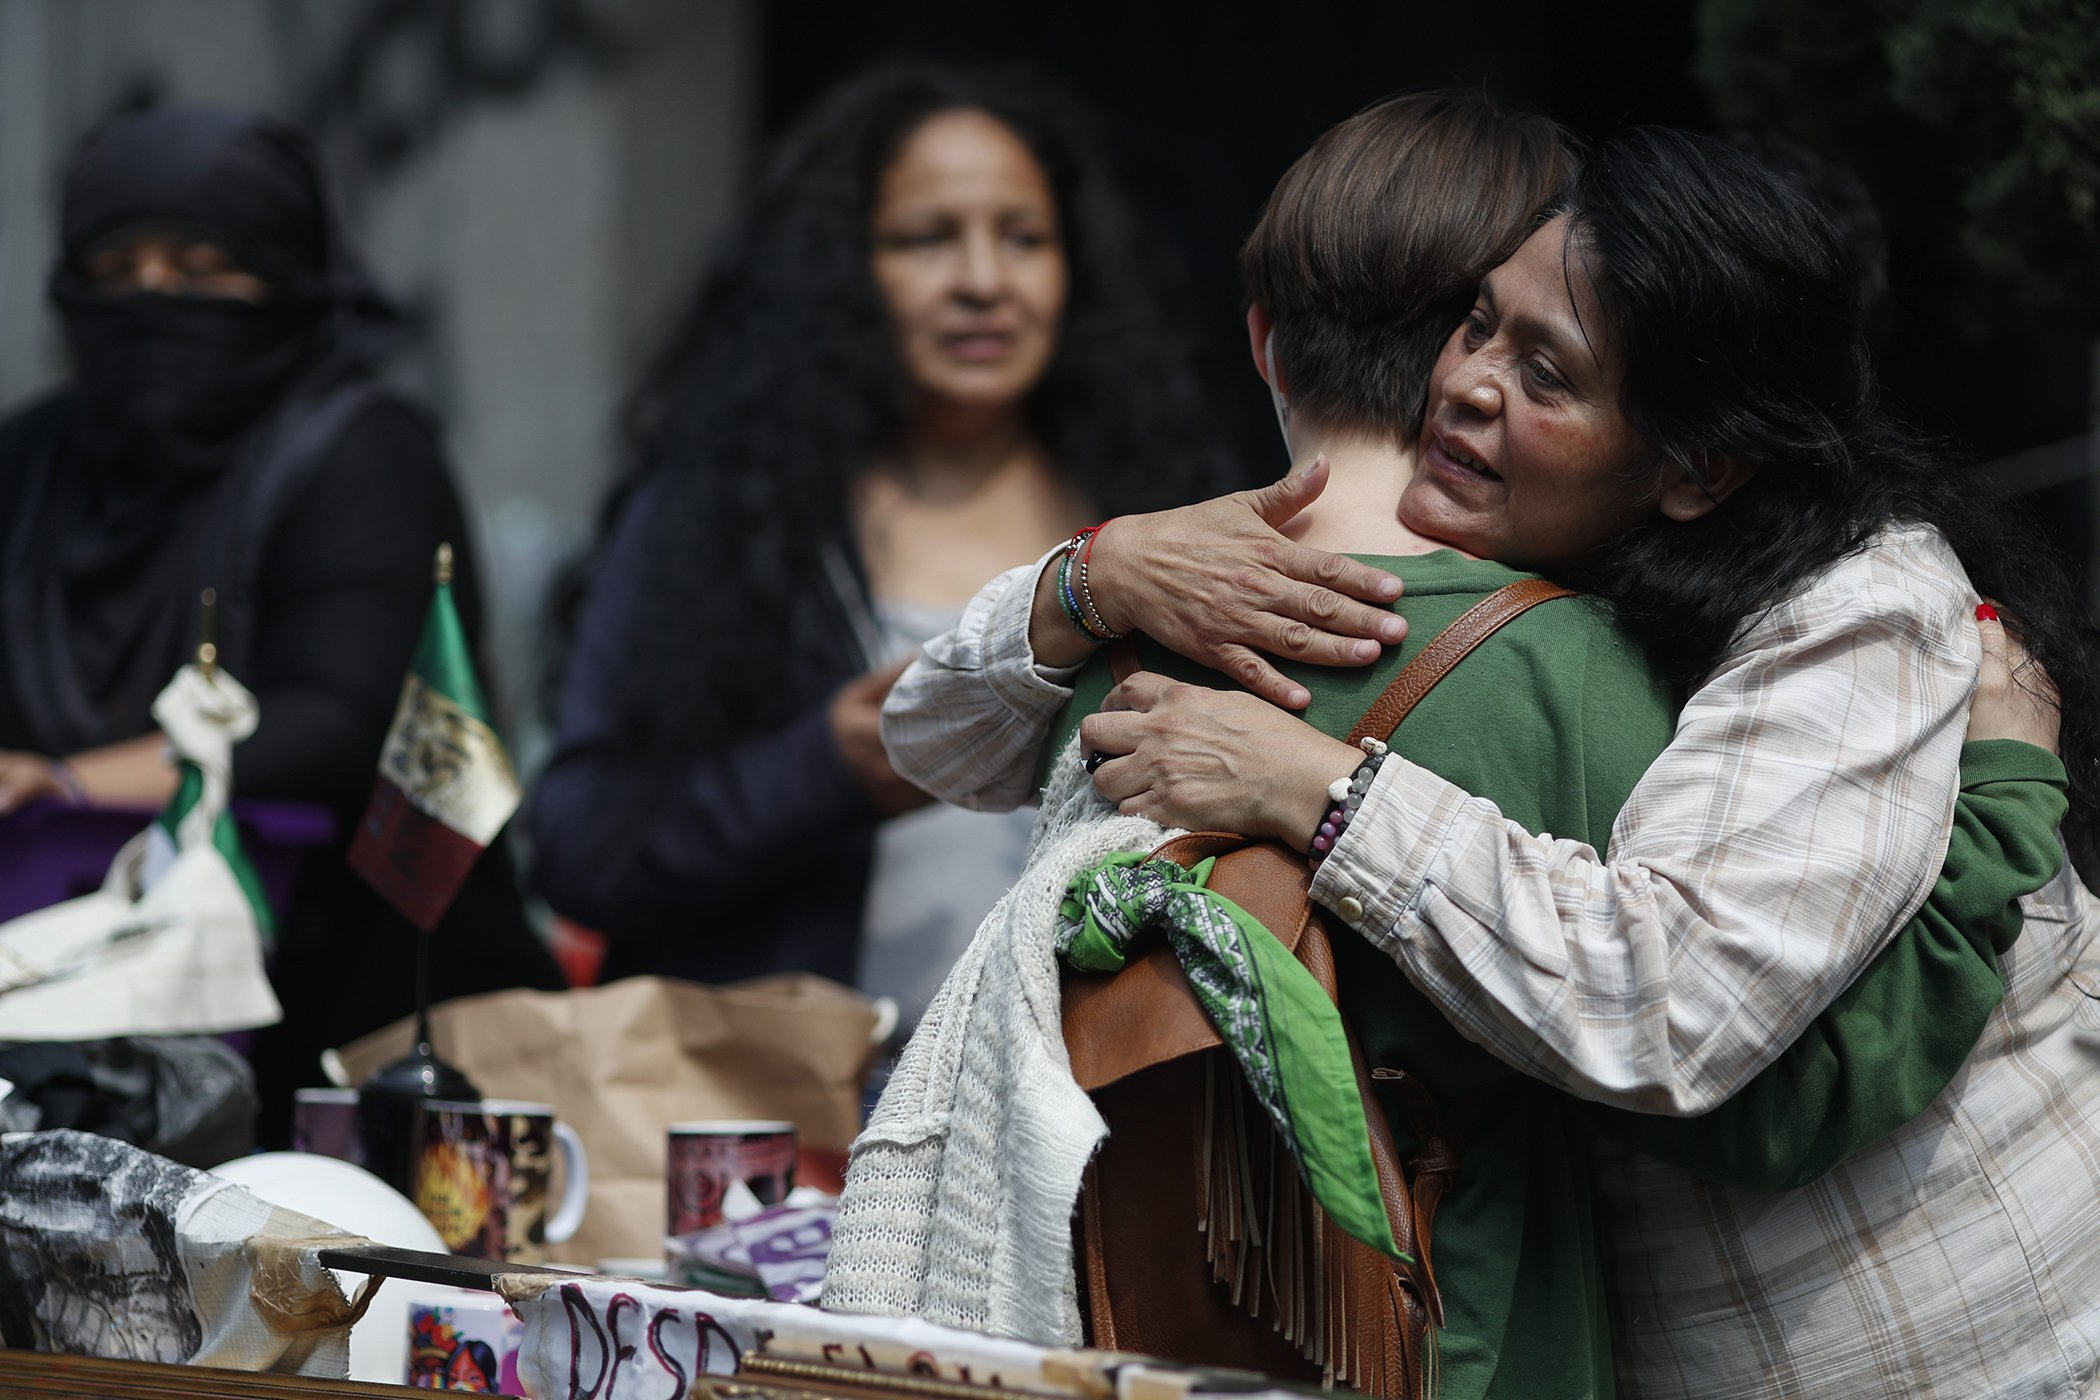 mexico-gender-based-violence-protest-002.jpg__2100x1400_q85_crop_subject_location-1050,700_subsampling-2_upscale.jpg